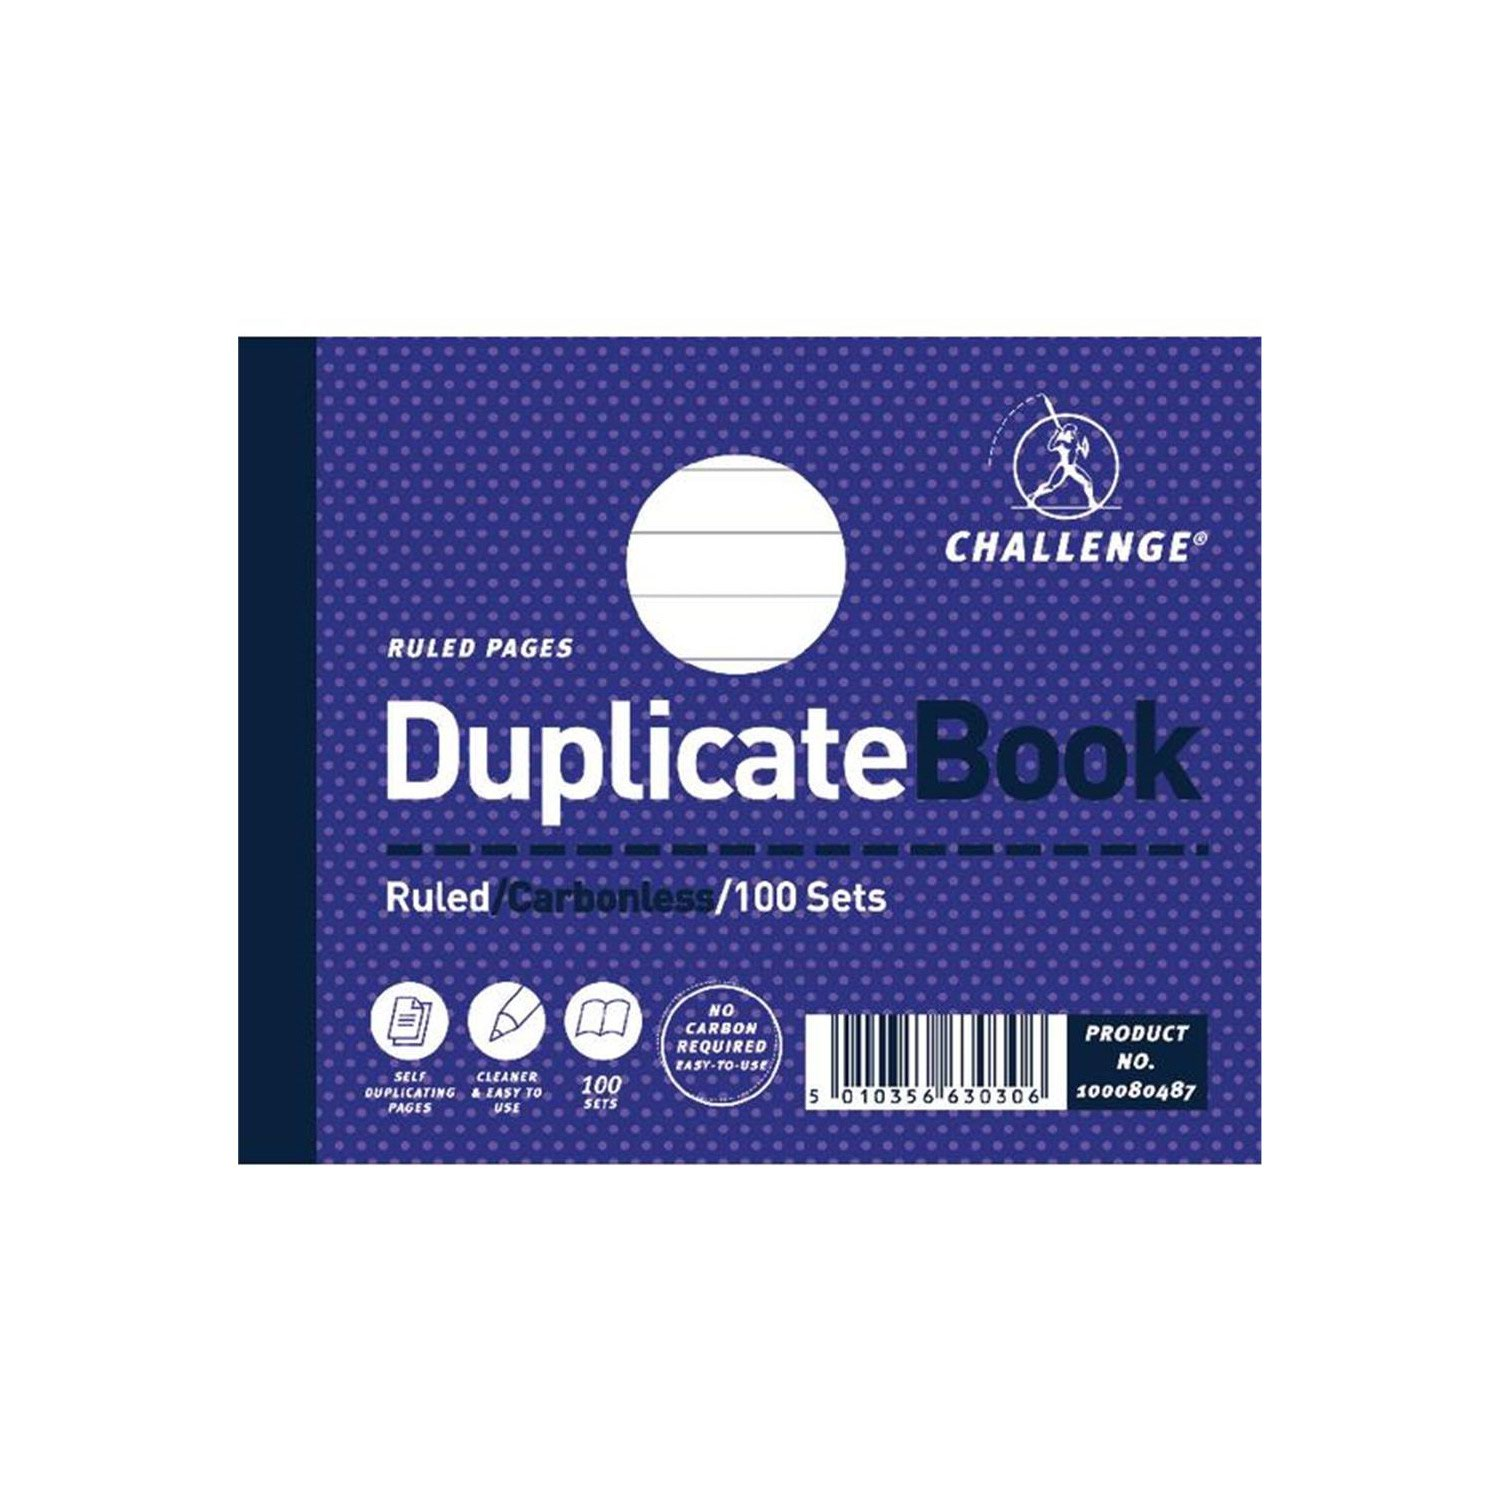 Image for Challenge Duplicate Book 105x130mm Ruled 100sets 100080487